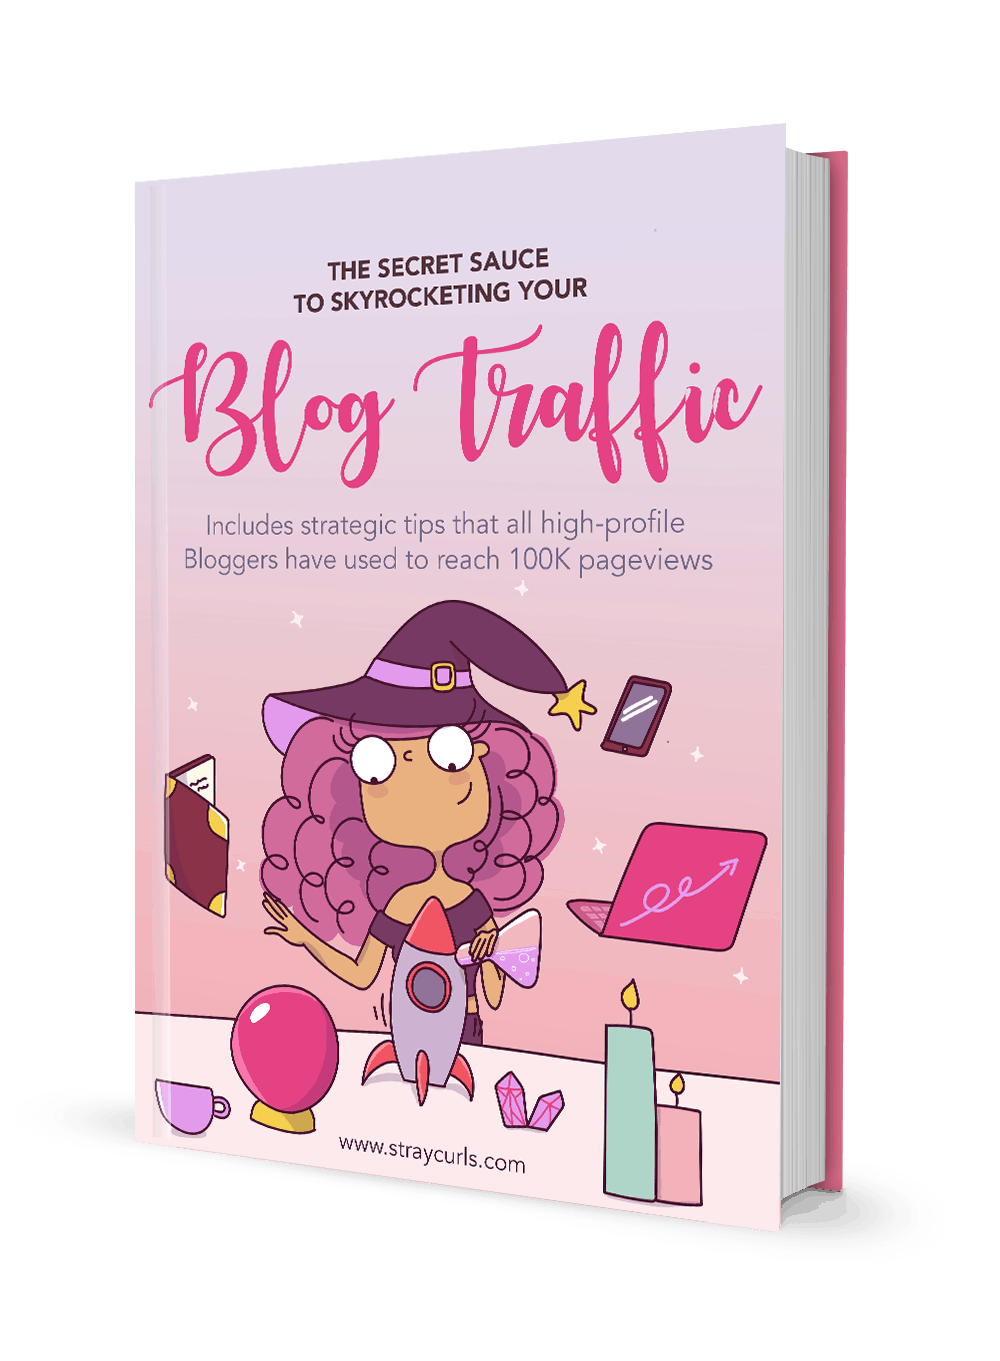 This Blog Traffic eBook will teach you how to grow your blog traffic from scratch so that you can earn more money with your blog.